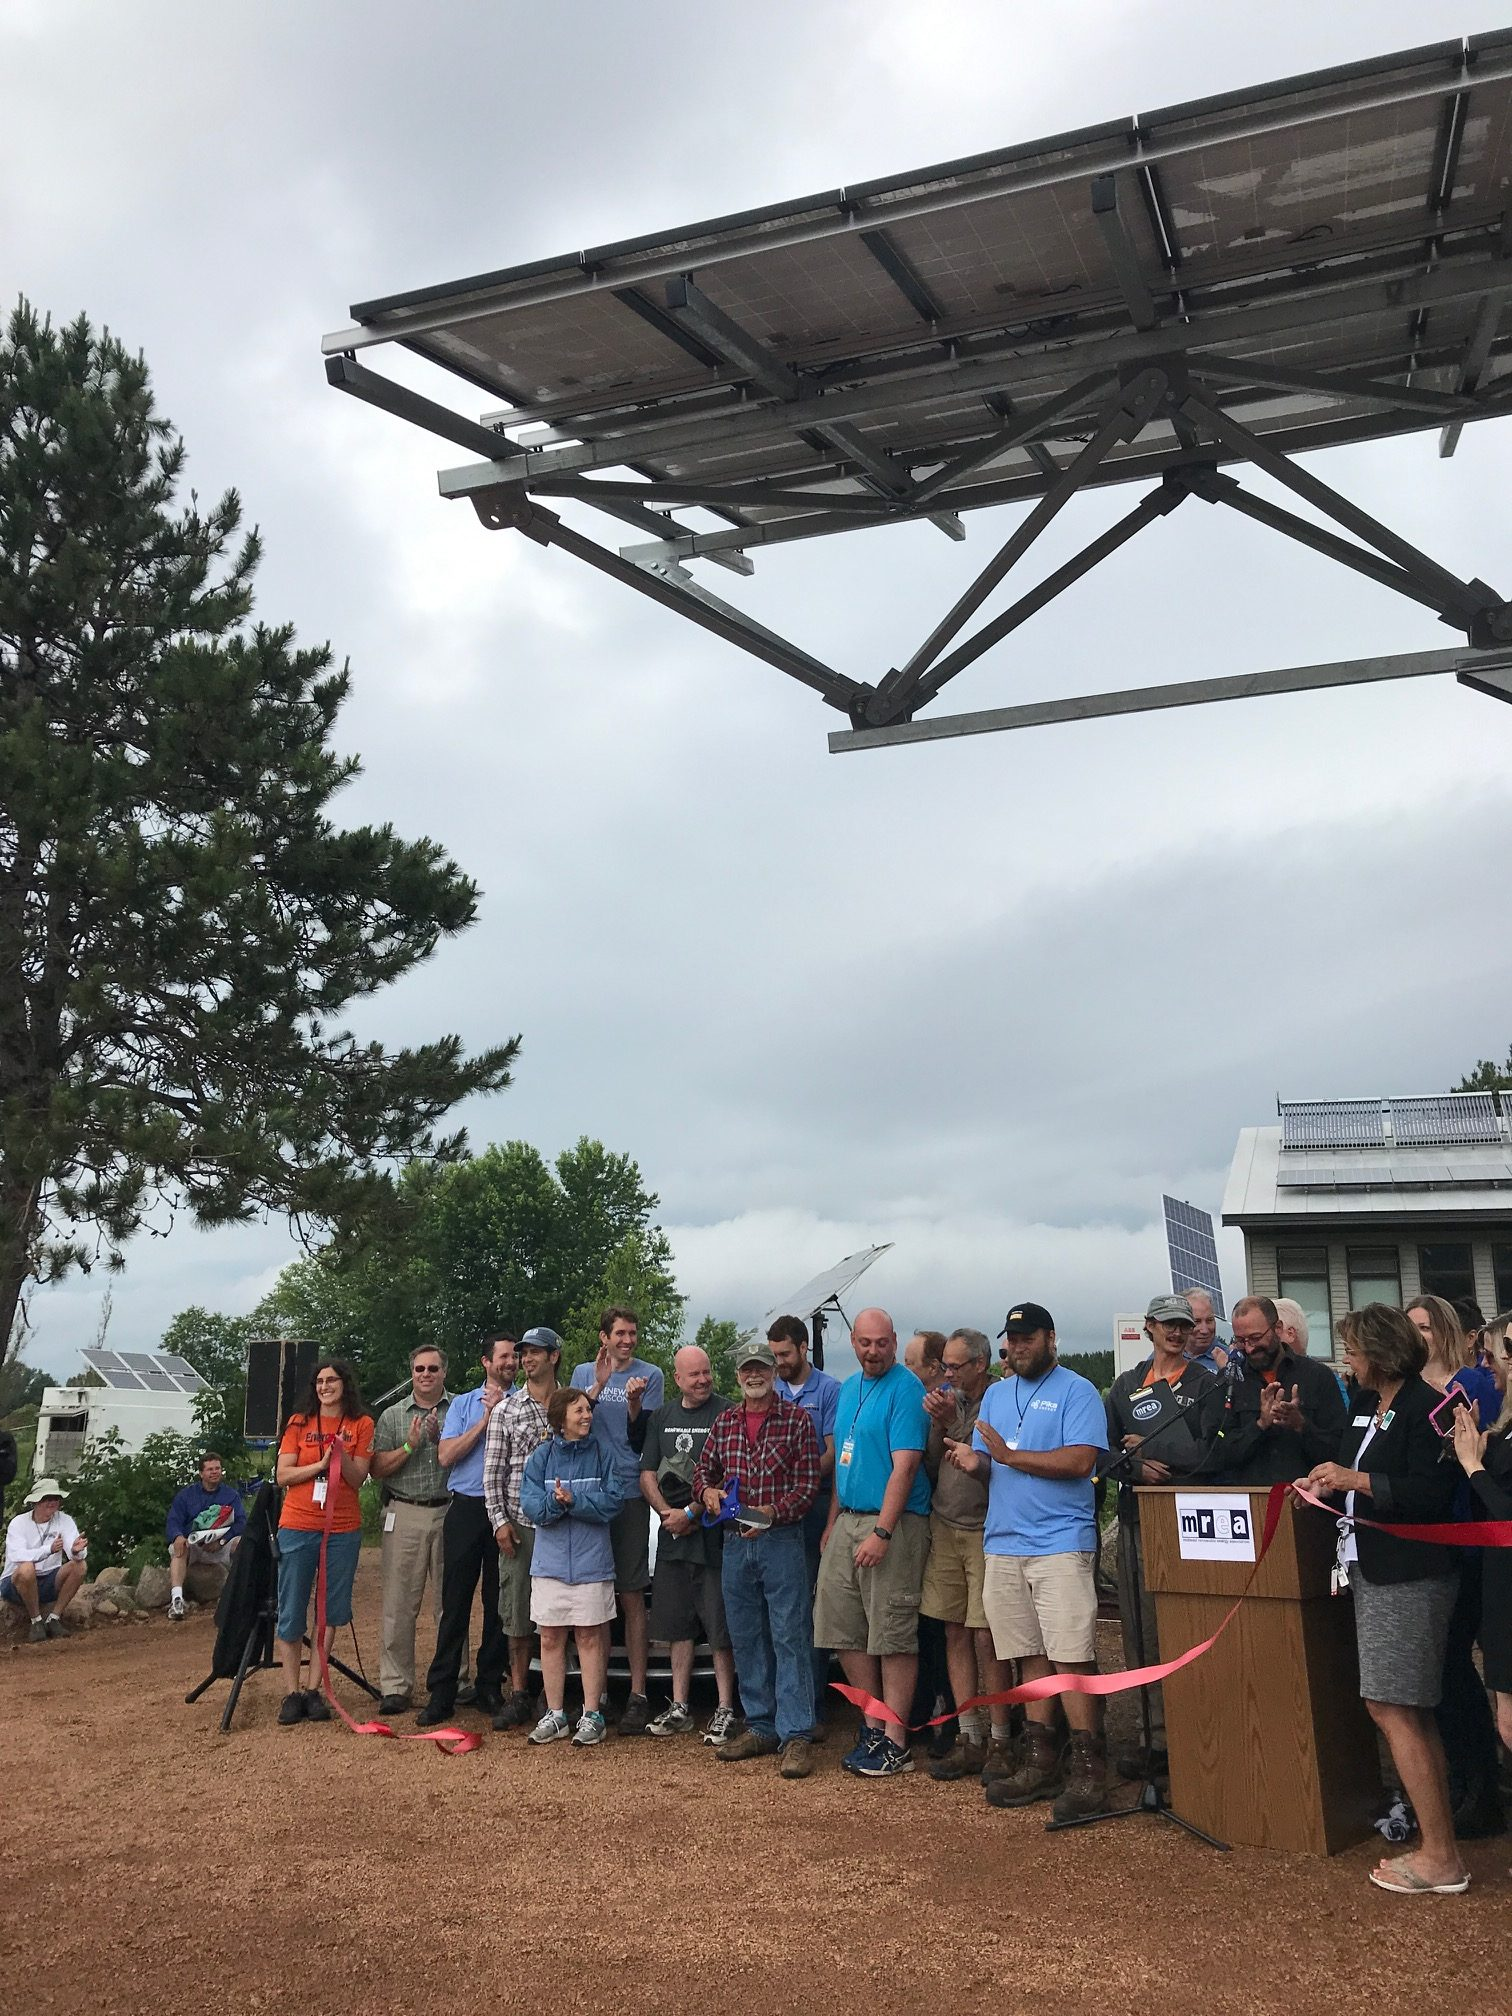 Dedication of the Driving on Sunshine carport, a Solar for Good grant recipient.